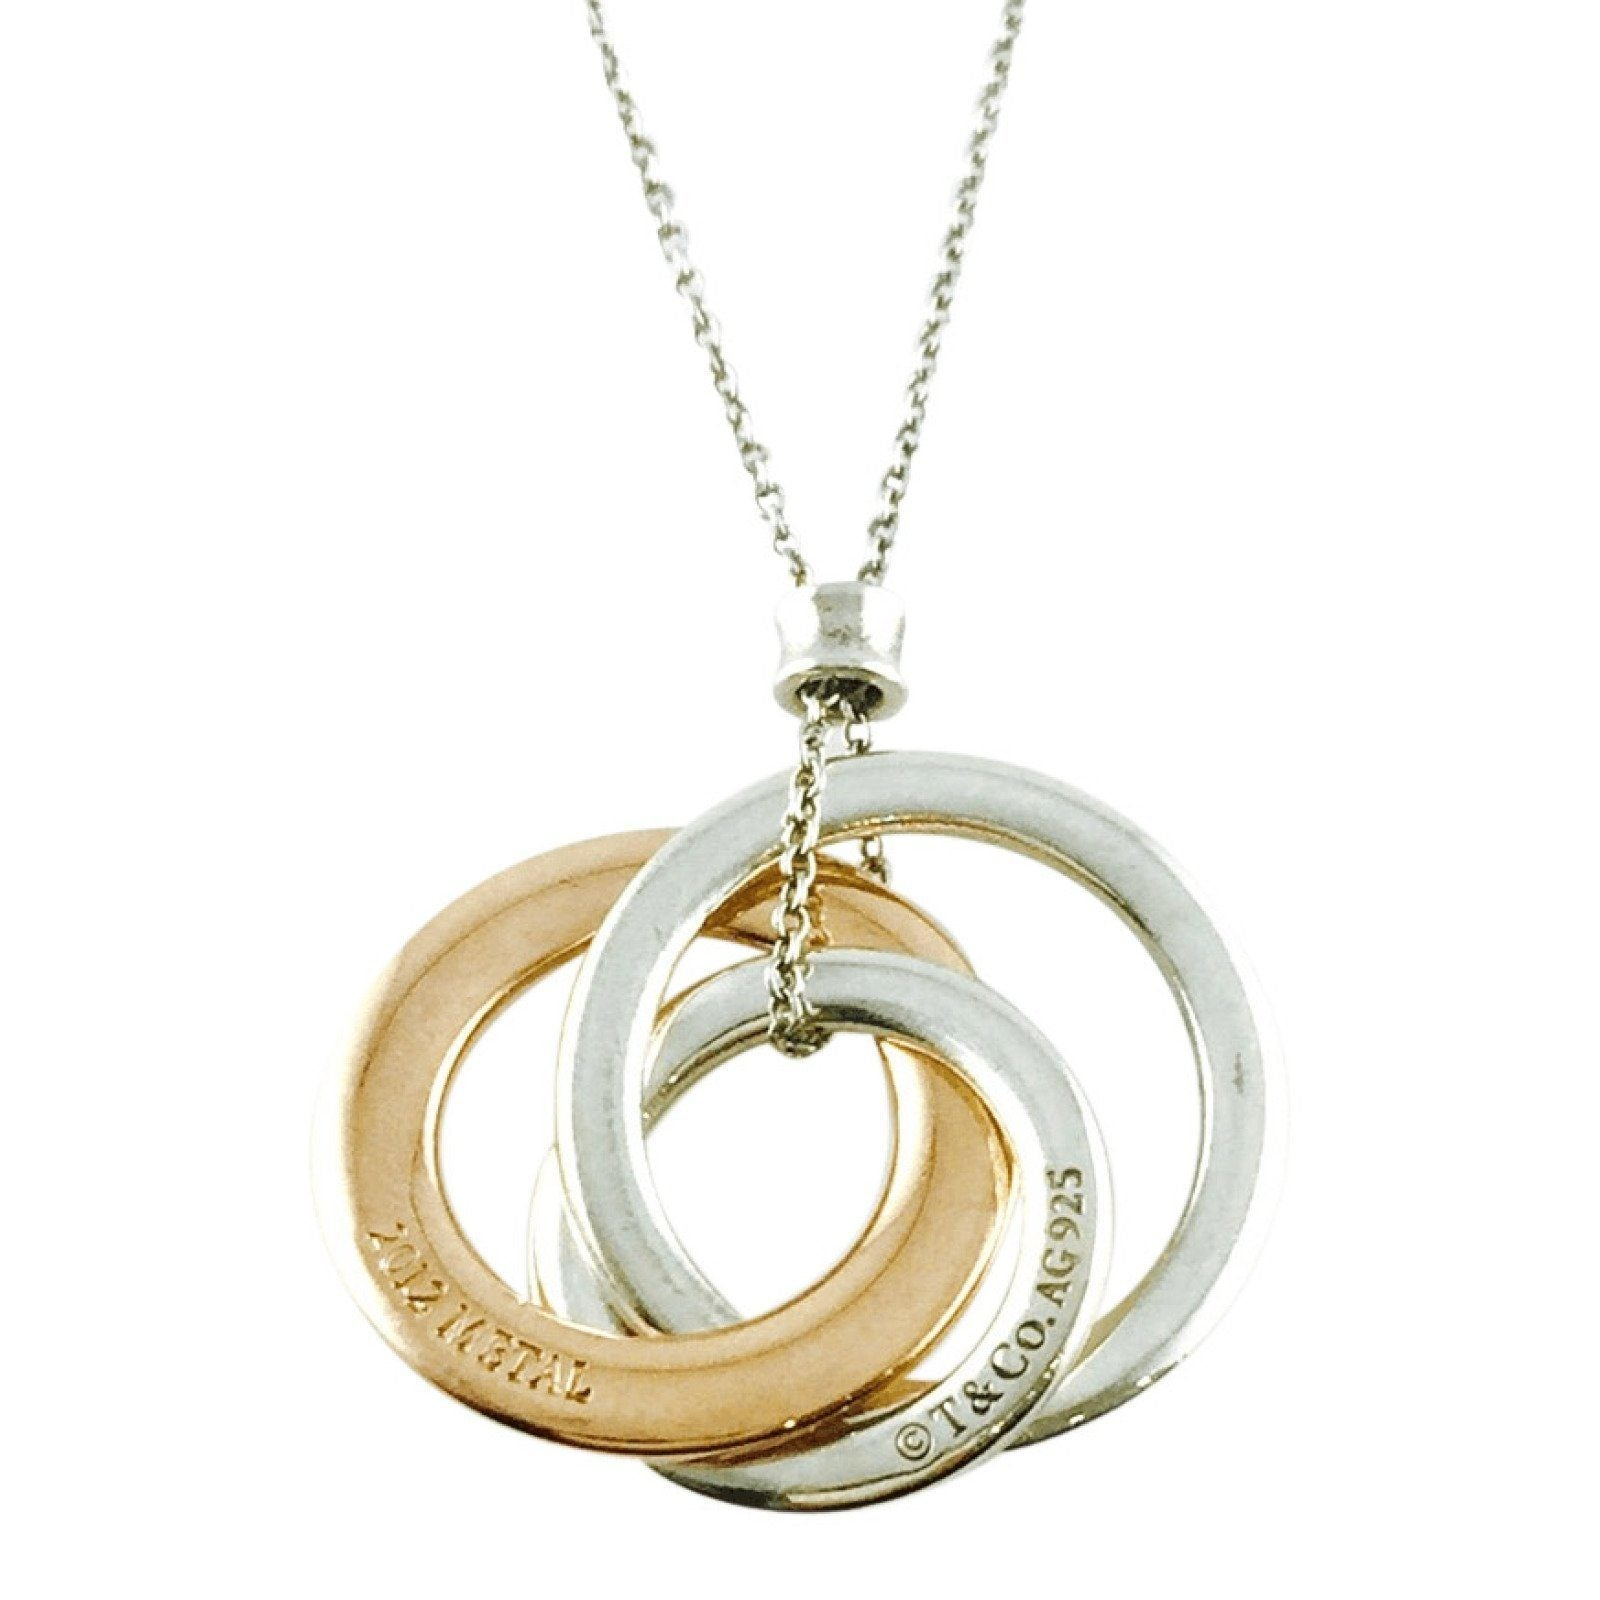 dbb6e1d03 Tiffany & Co 1837 Interlocking Circles Pendant in Sterling Silver and Rubedo  Metal Necklaces Tiffany ...